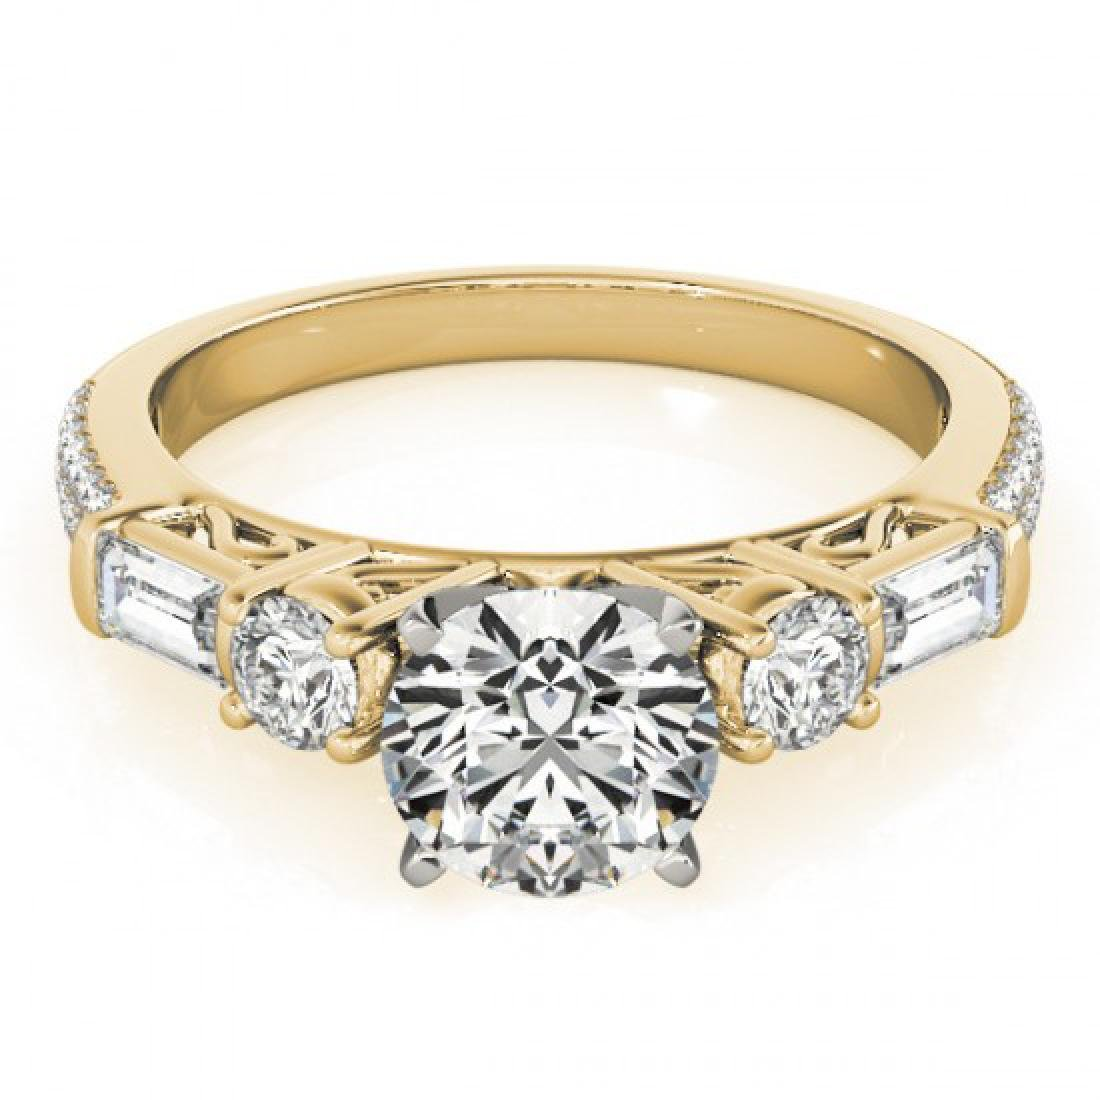 2.5 CTW Certified VS/SI Diamond Pave Solitaire Ring 14K